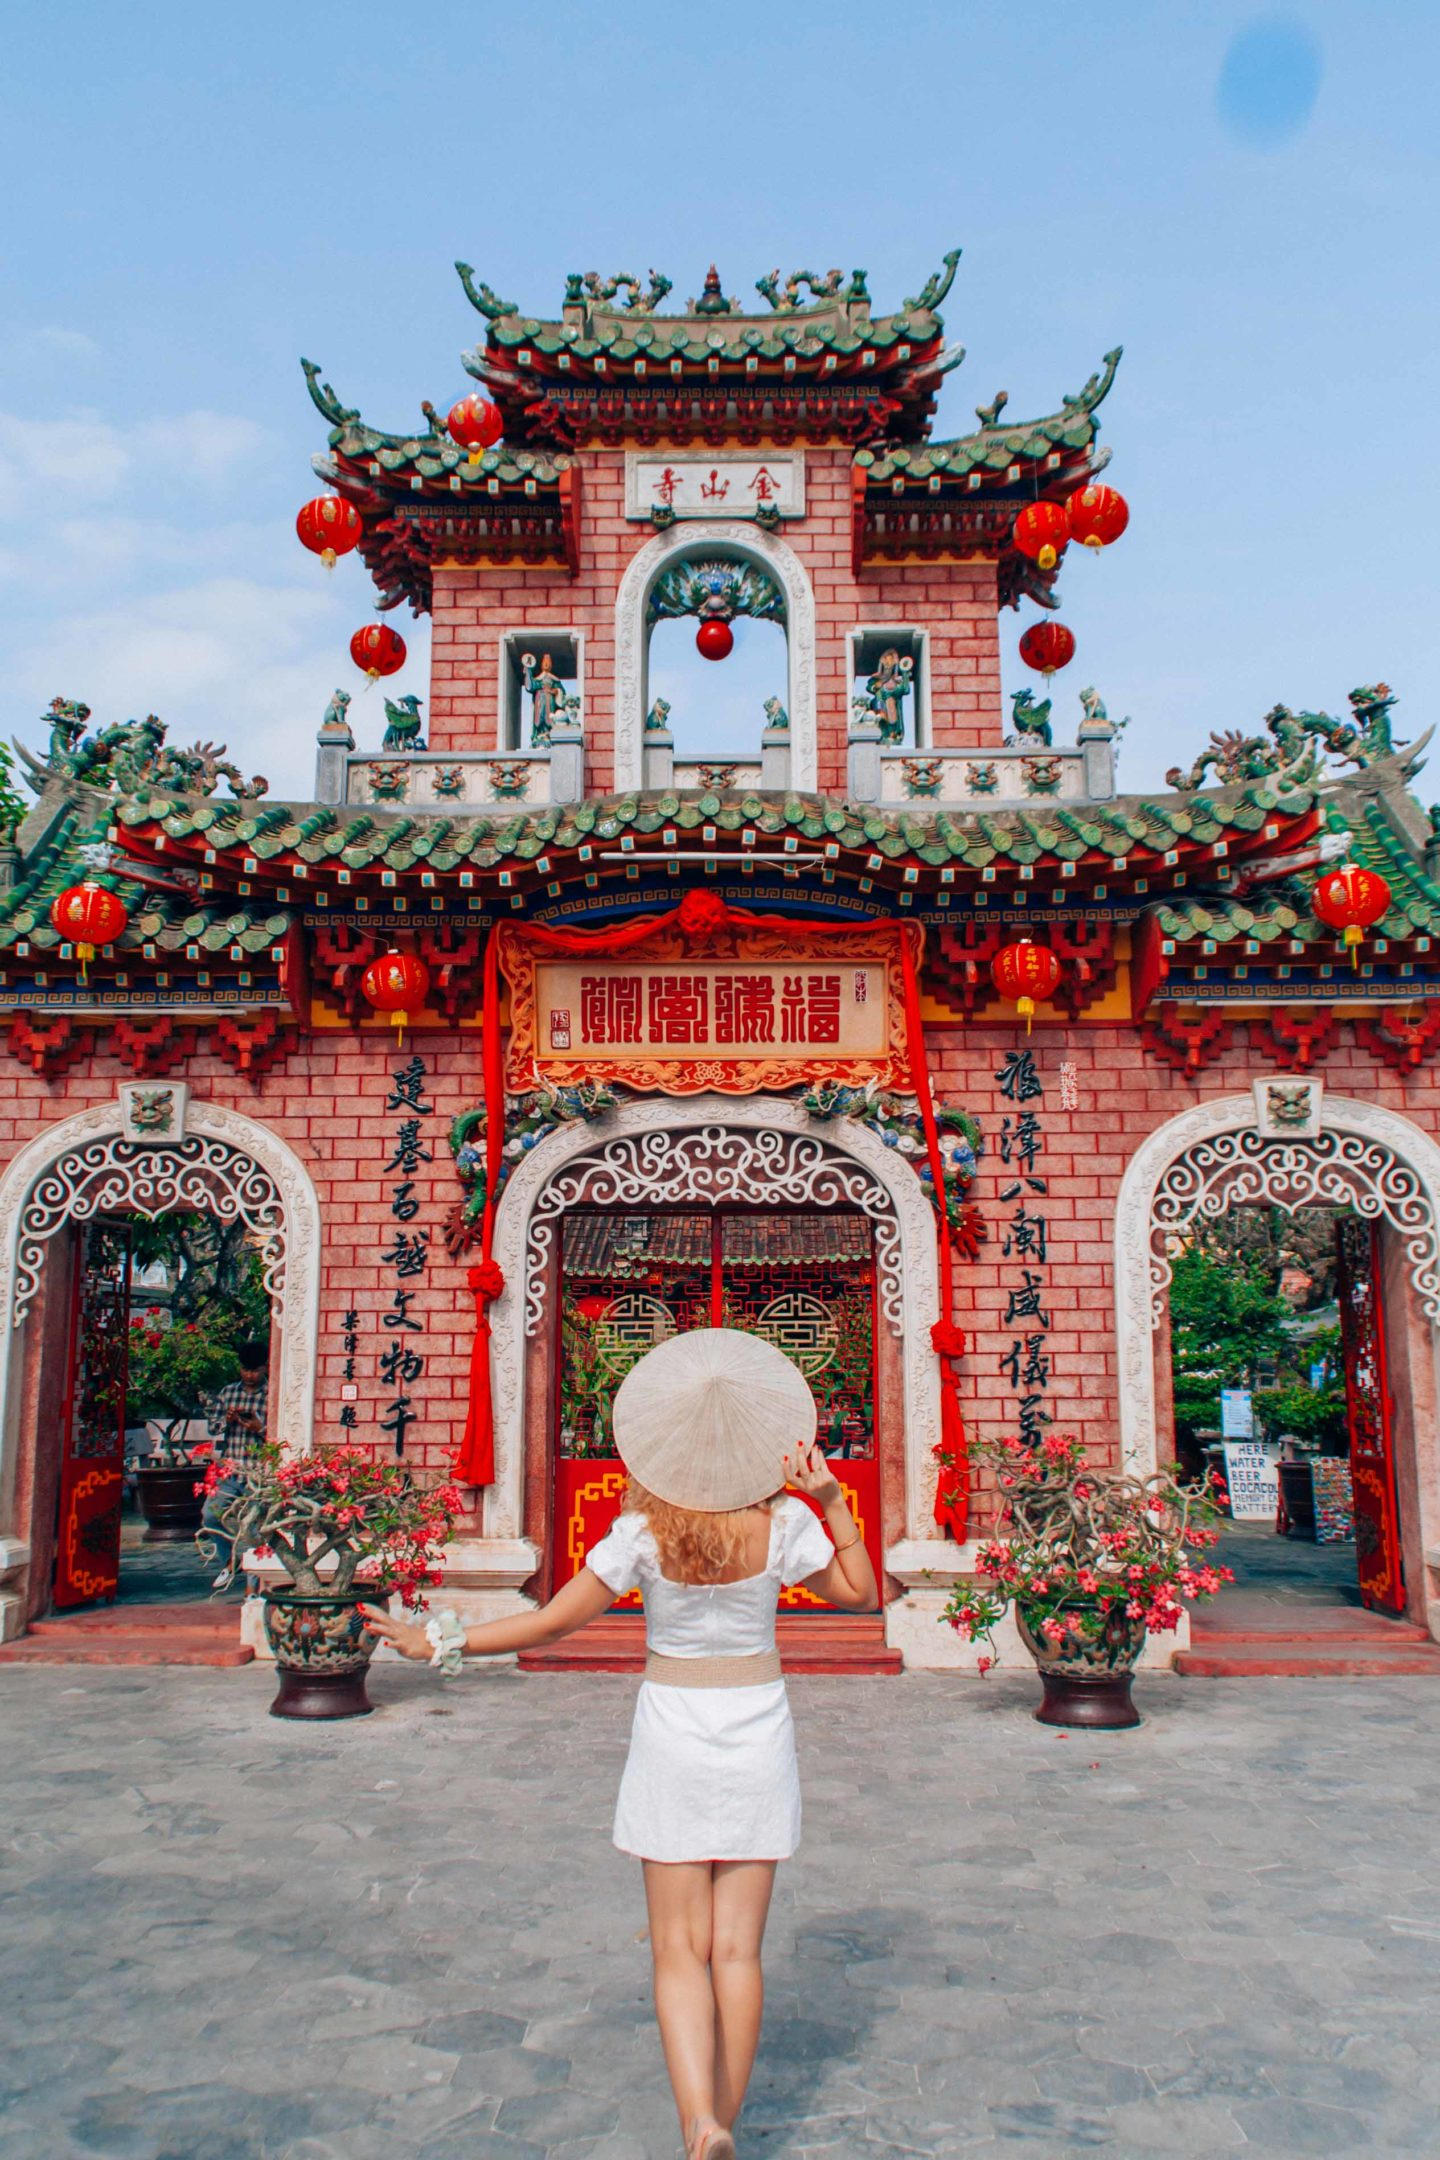 Fujian Chinese Assembly Hall, one of the most beautiful monuments to visit in Hoi An, Vietnam